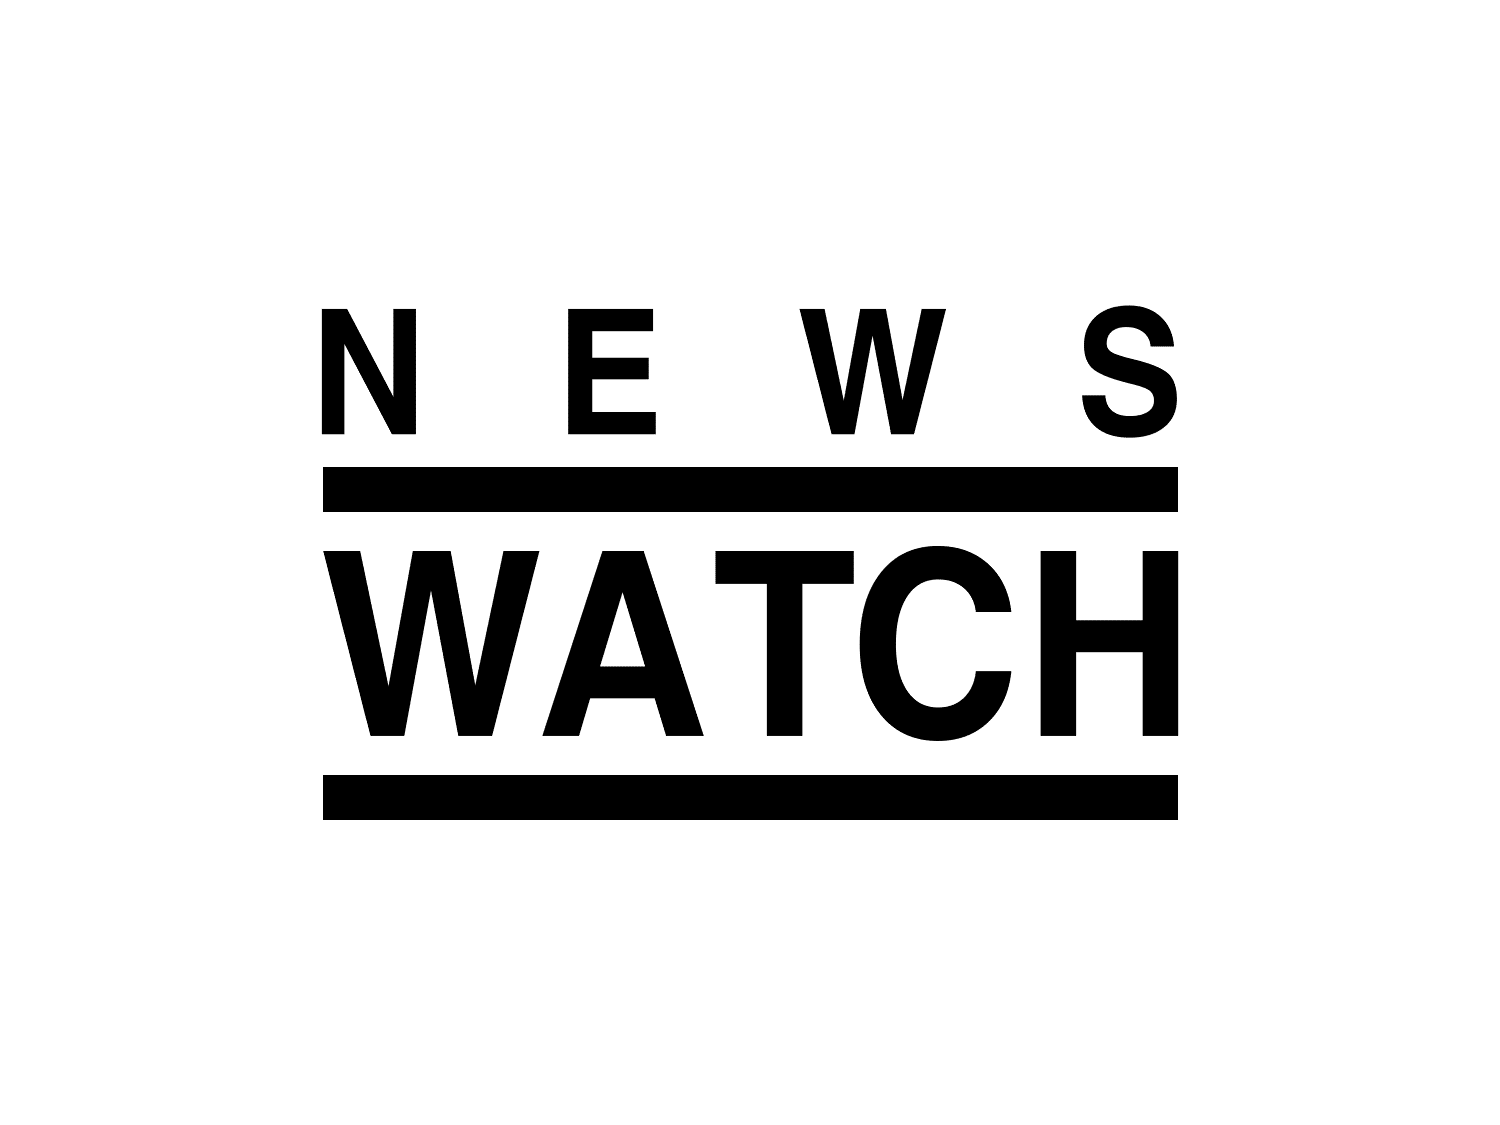 NewsWatch (Philippine TV program)